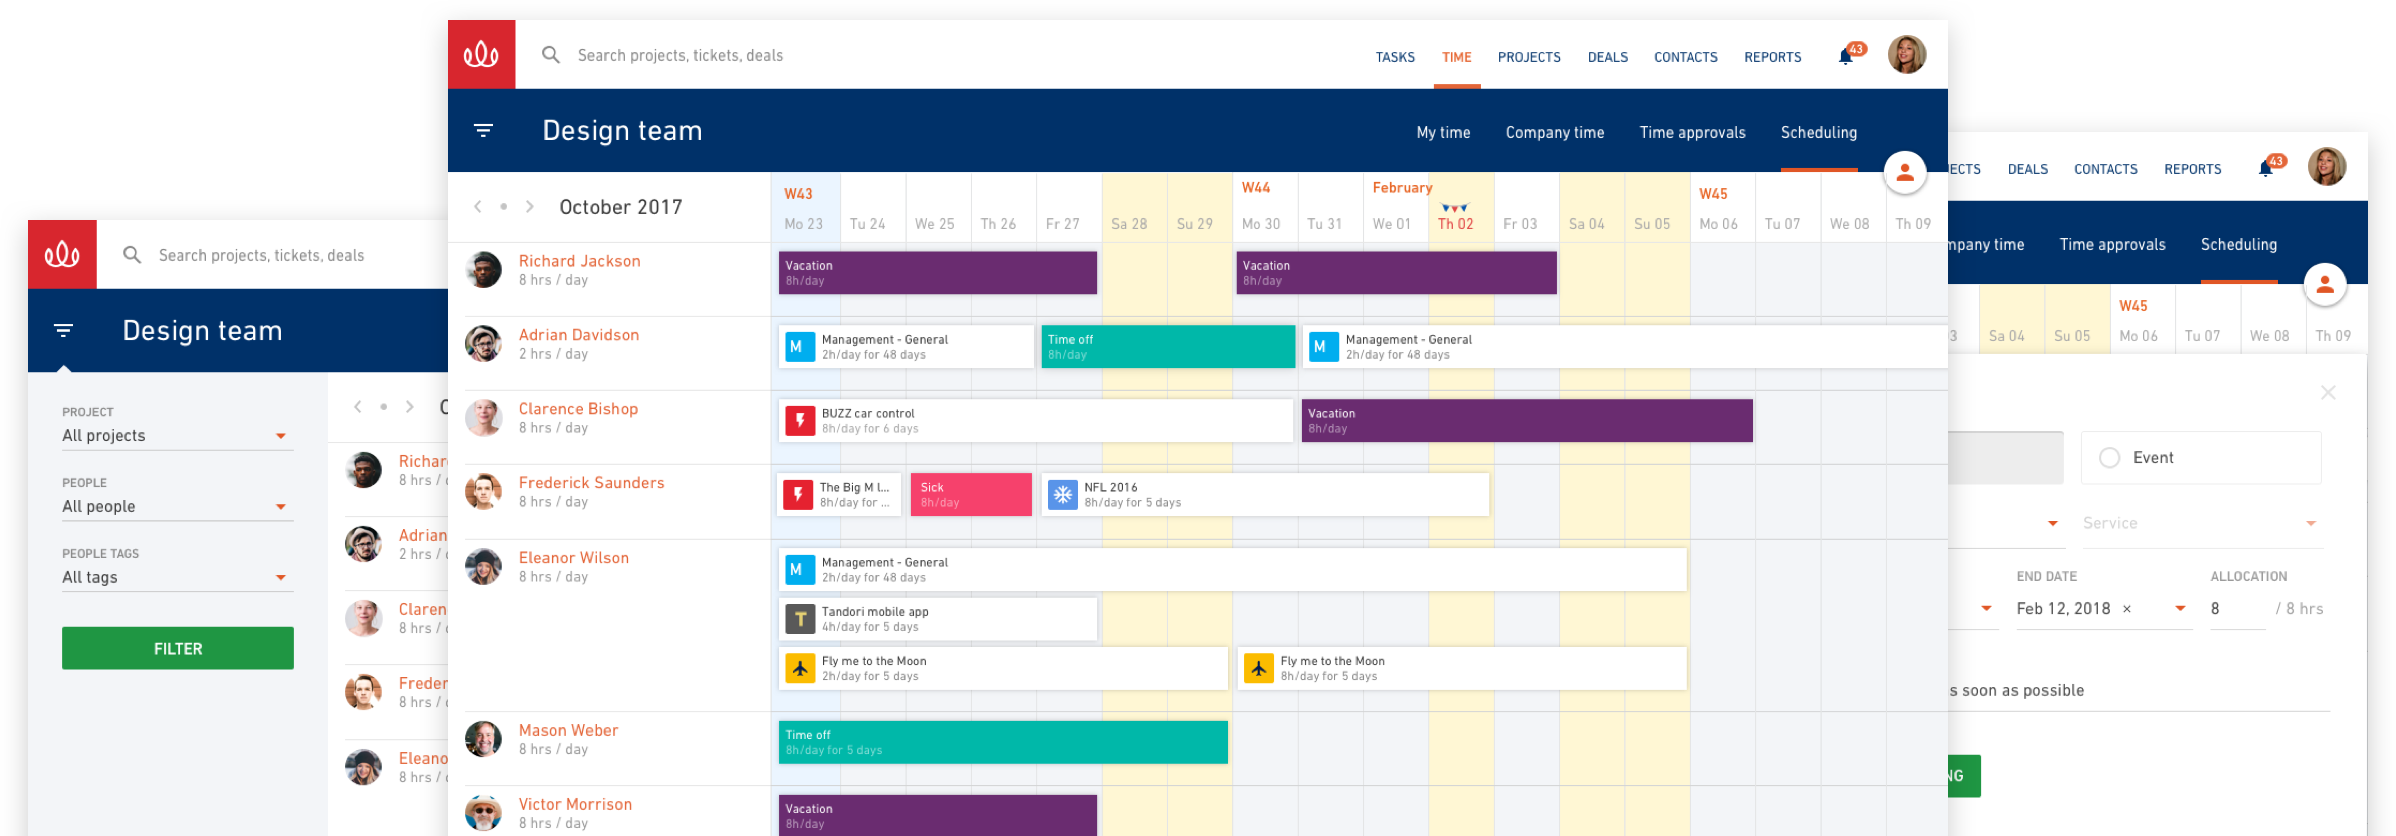 Resource planning capabilities feature calendar-based scheduling for planning team work across the whole company